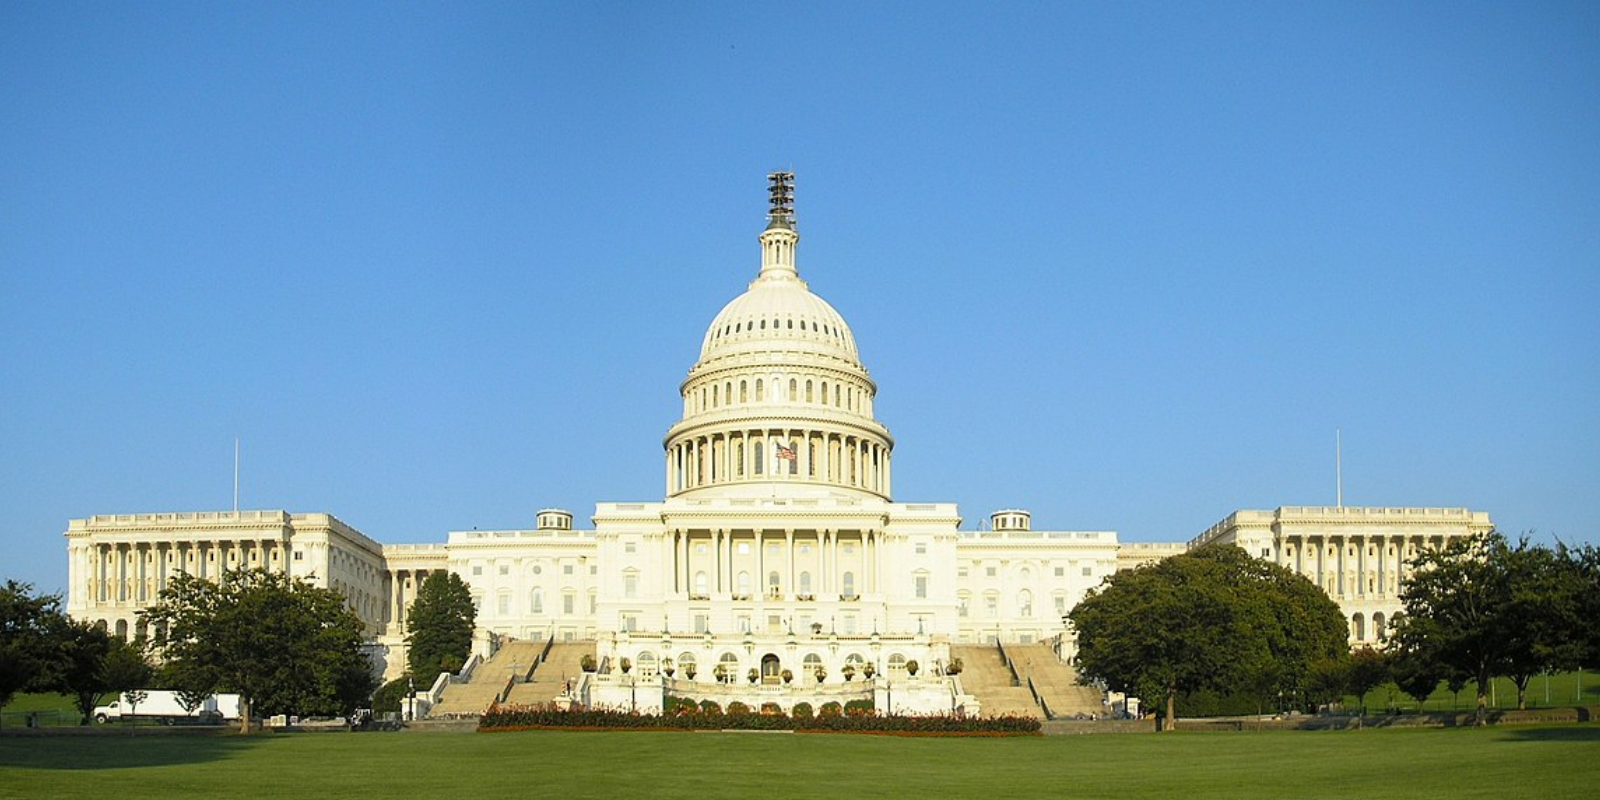 BREAKING: $1.9 billion approved by House to increase security at US Capitol building